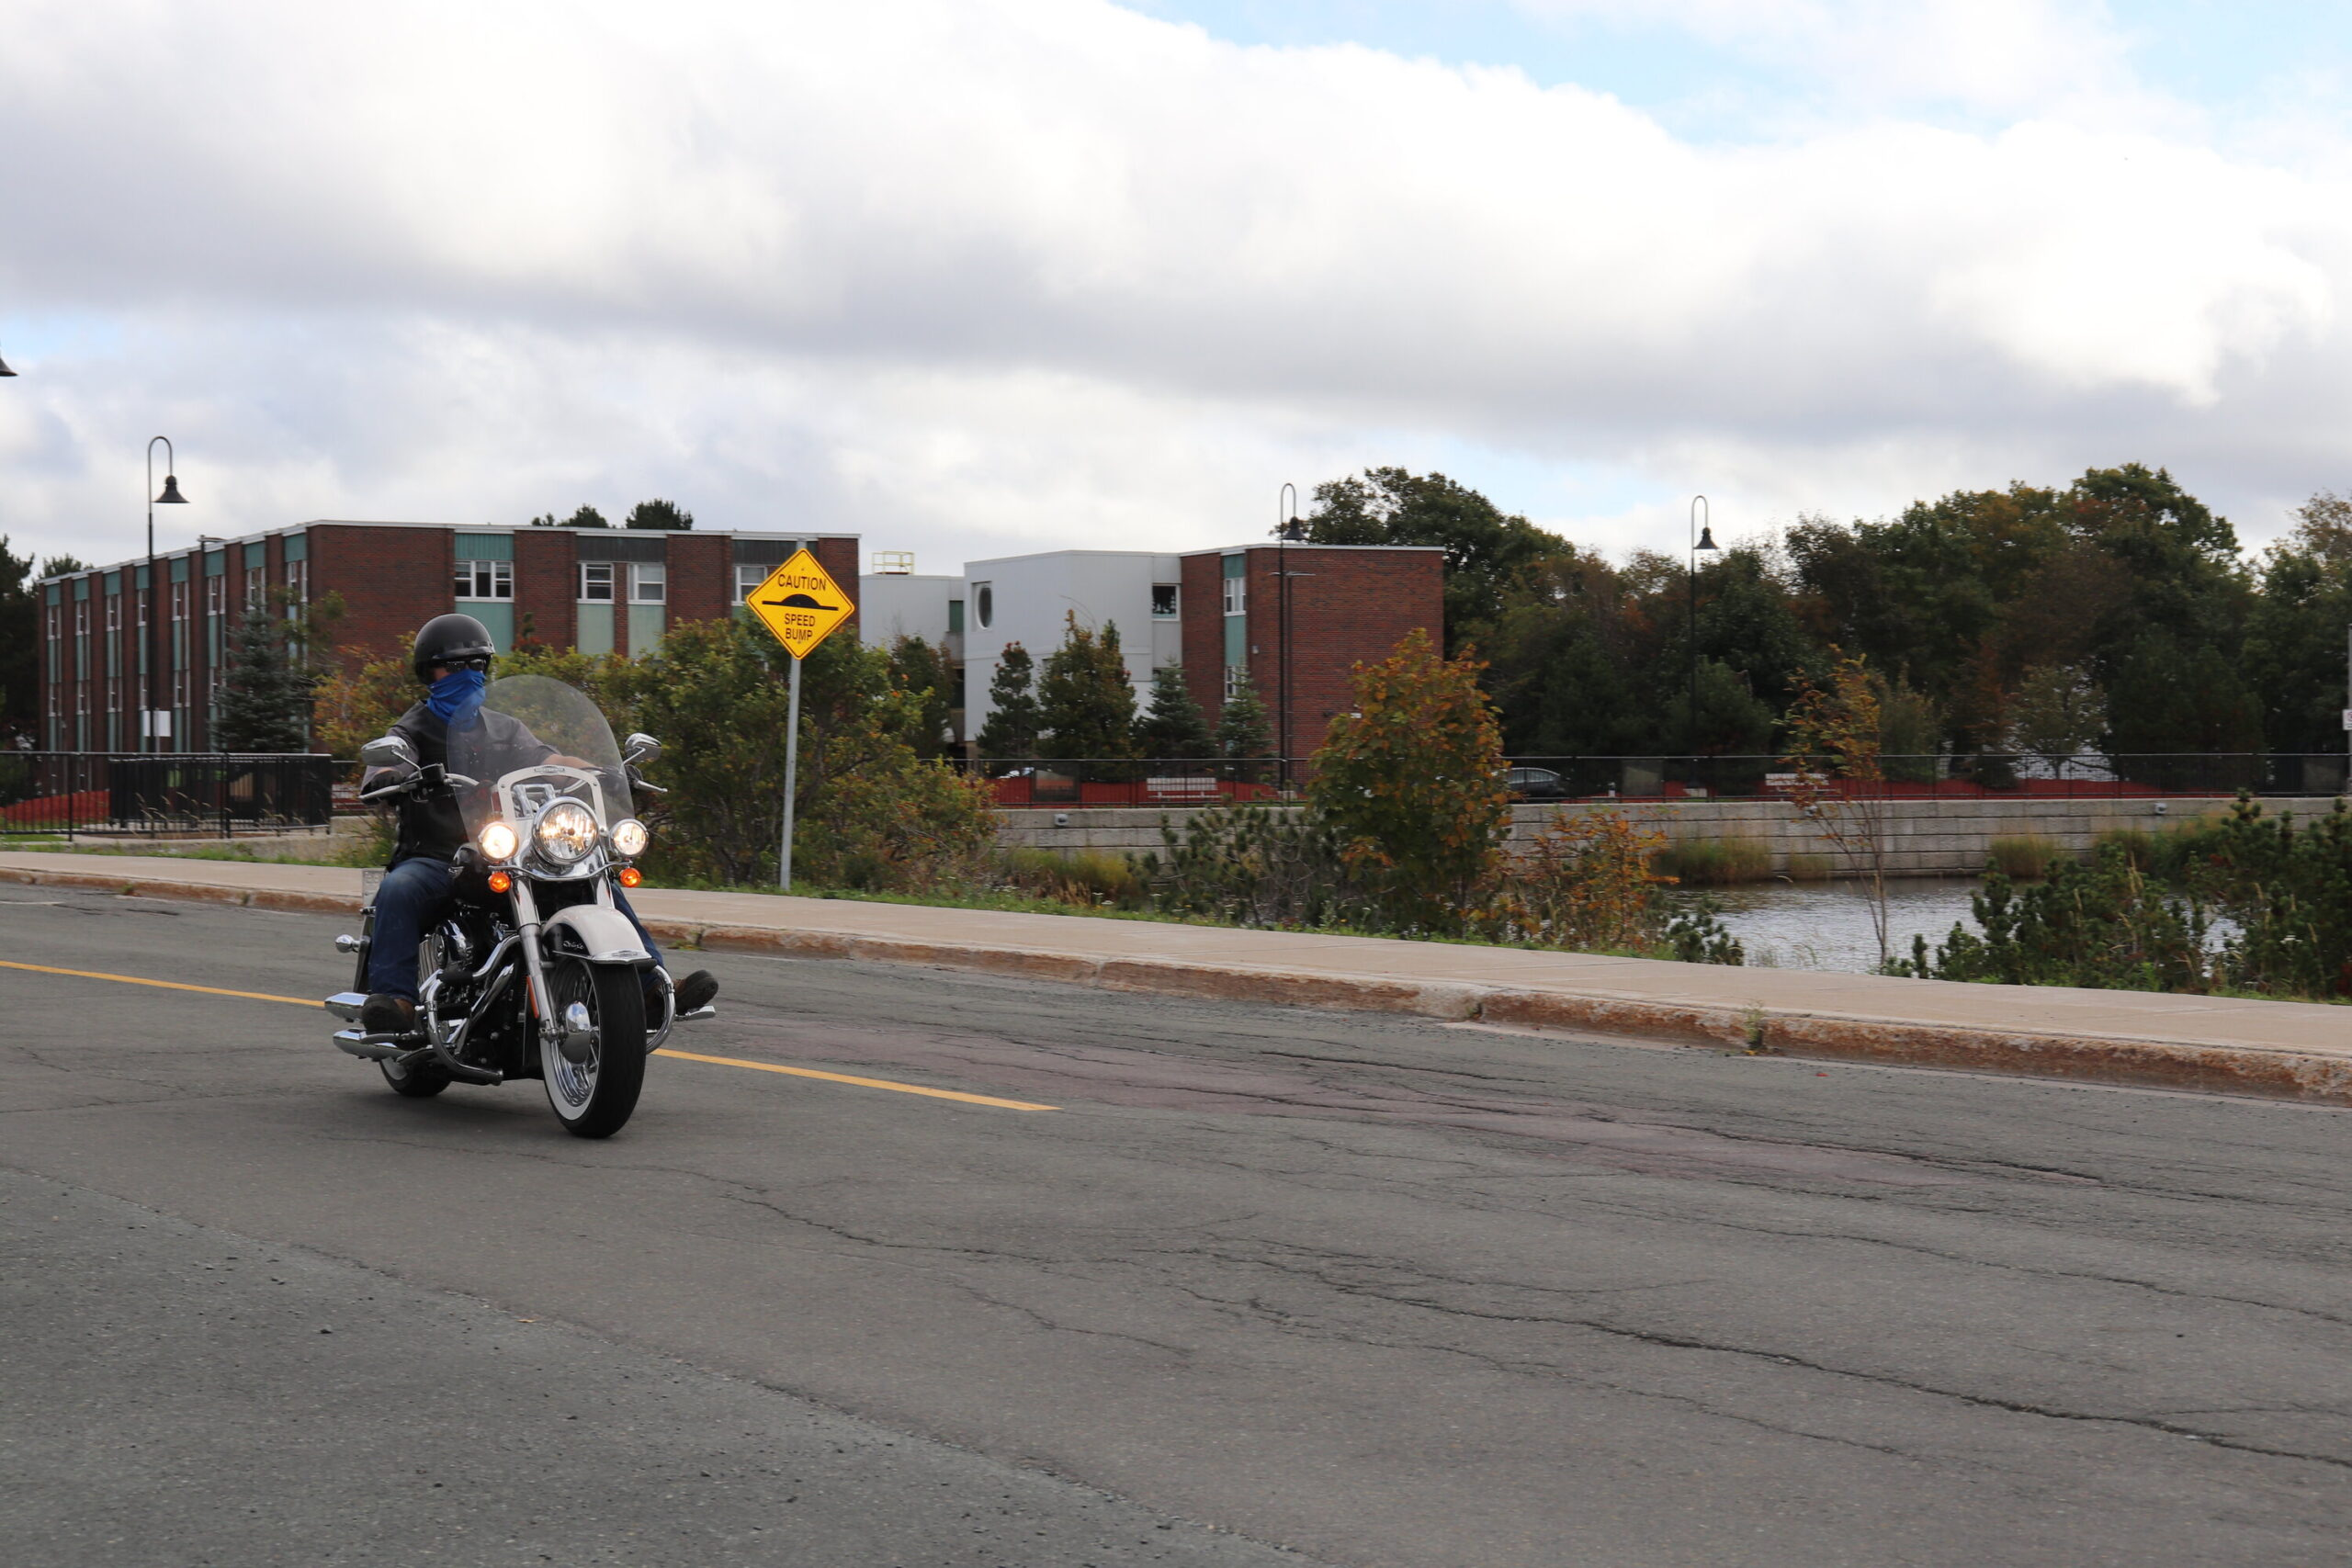 Motorcyclists enjoy a calm fall day. But the risks can be plentiful.